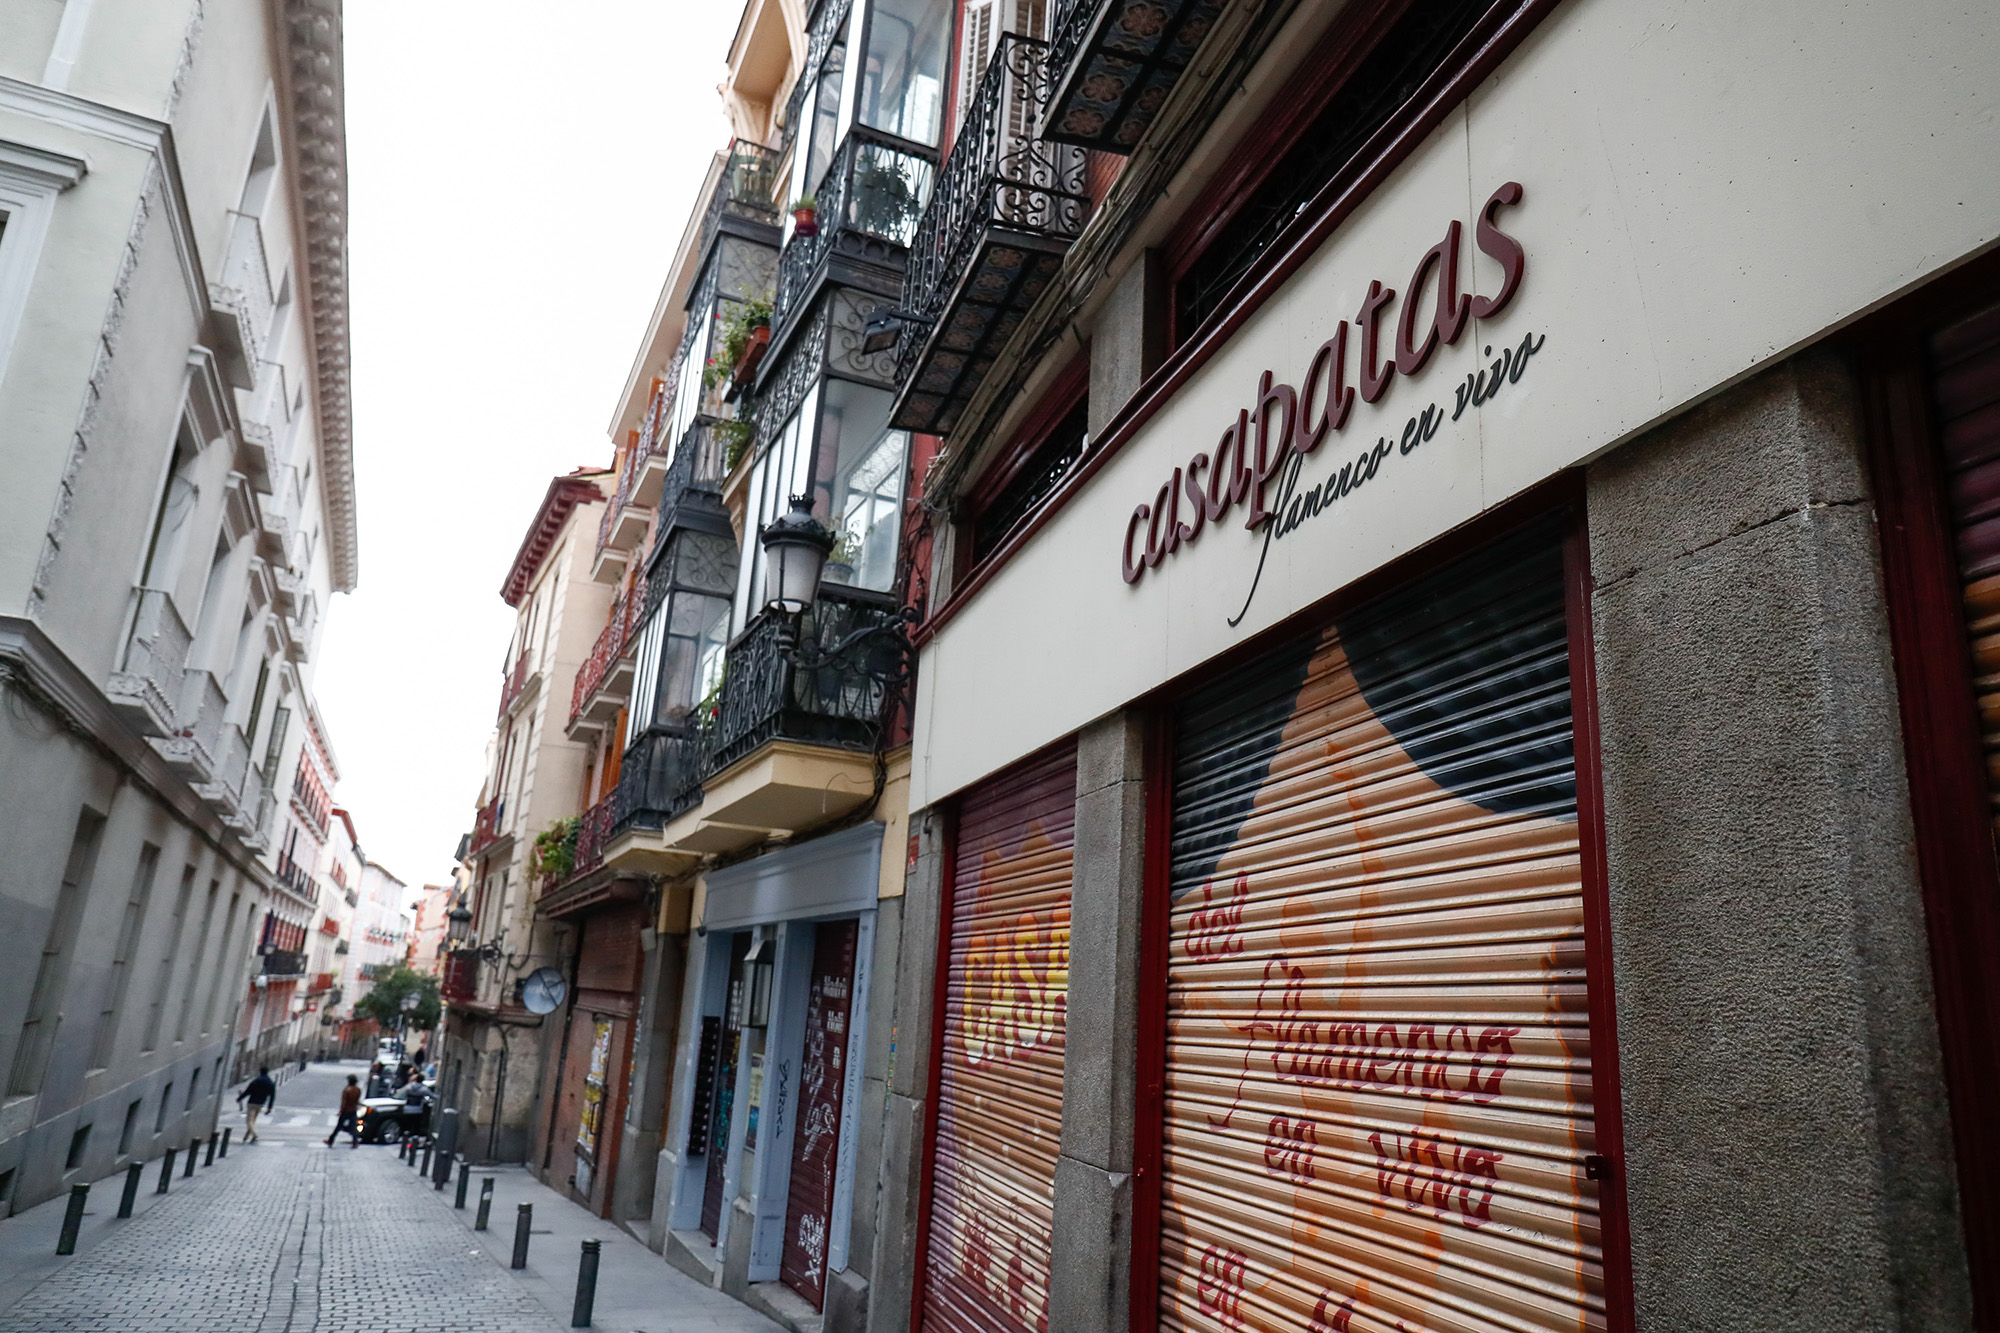 Restaurants and shops are closed due to the Covid-19 pandemic on October 28, 2020, in Madrid, Spain.